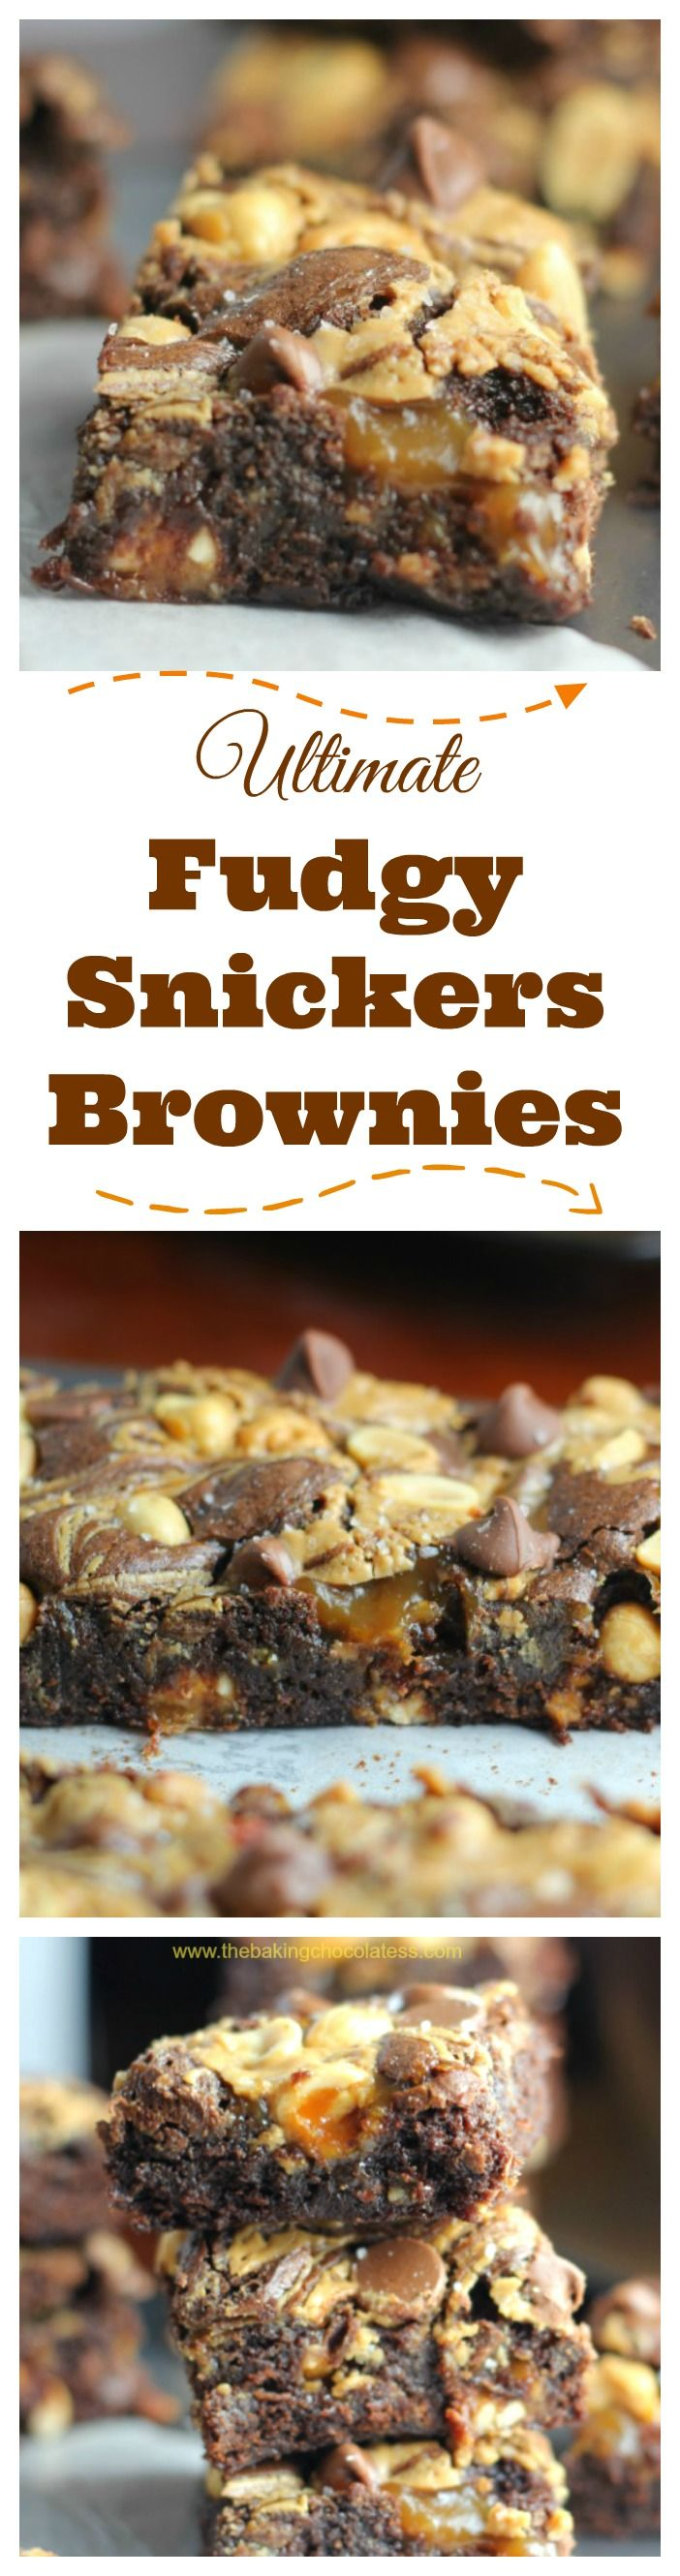 Ultimate Fudgy Snickers Brownies {Pure Indulgence!}